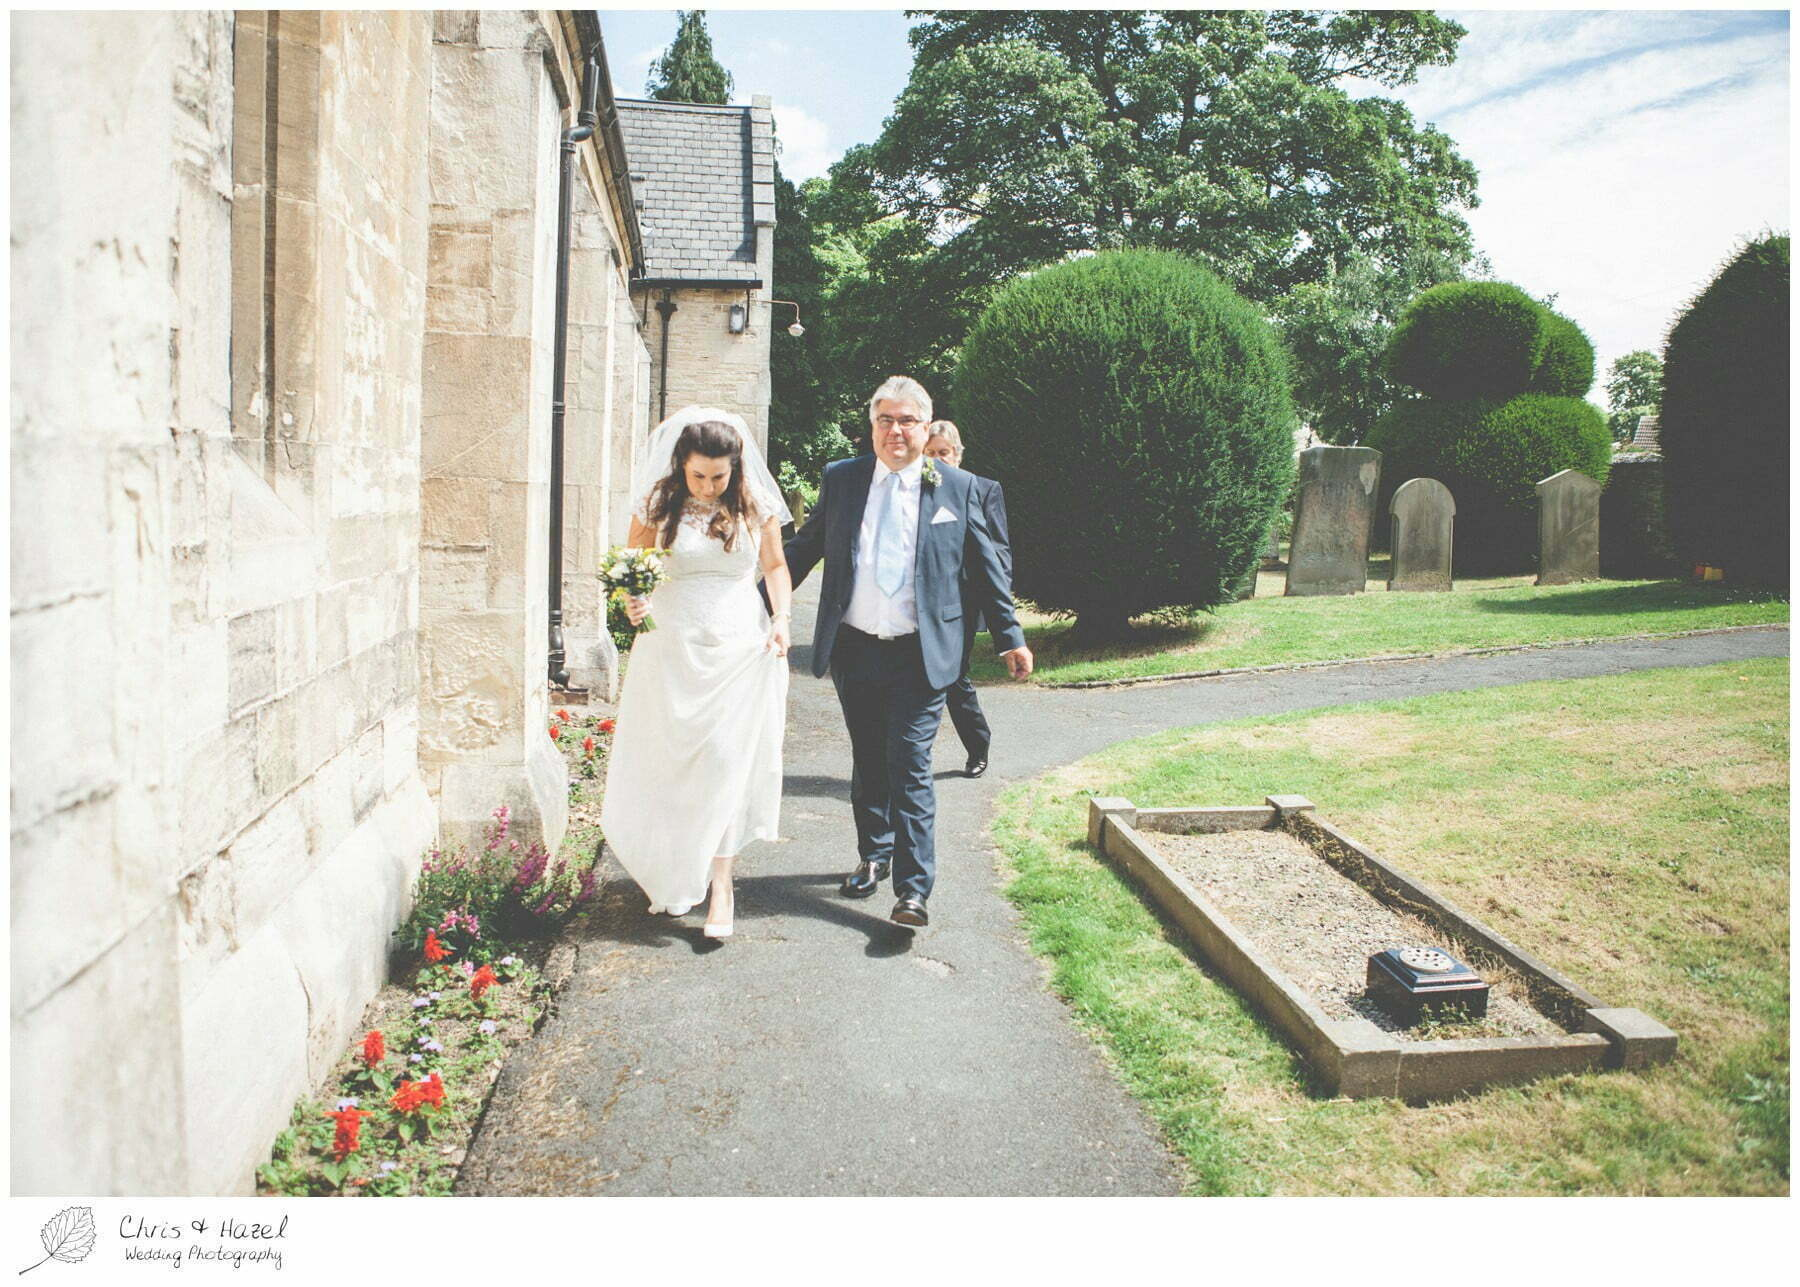 bride walking to church with father, st marys church, wedding, south milford Wedding Photographer, the engine shed, Wedding Photography wetherby, Chris and Hazel Wedding Photography, stevie pollard, stevie standerline, paul standerline,